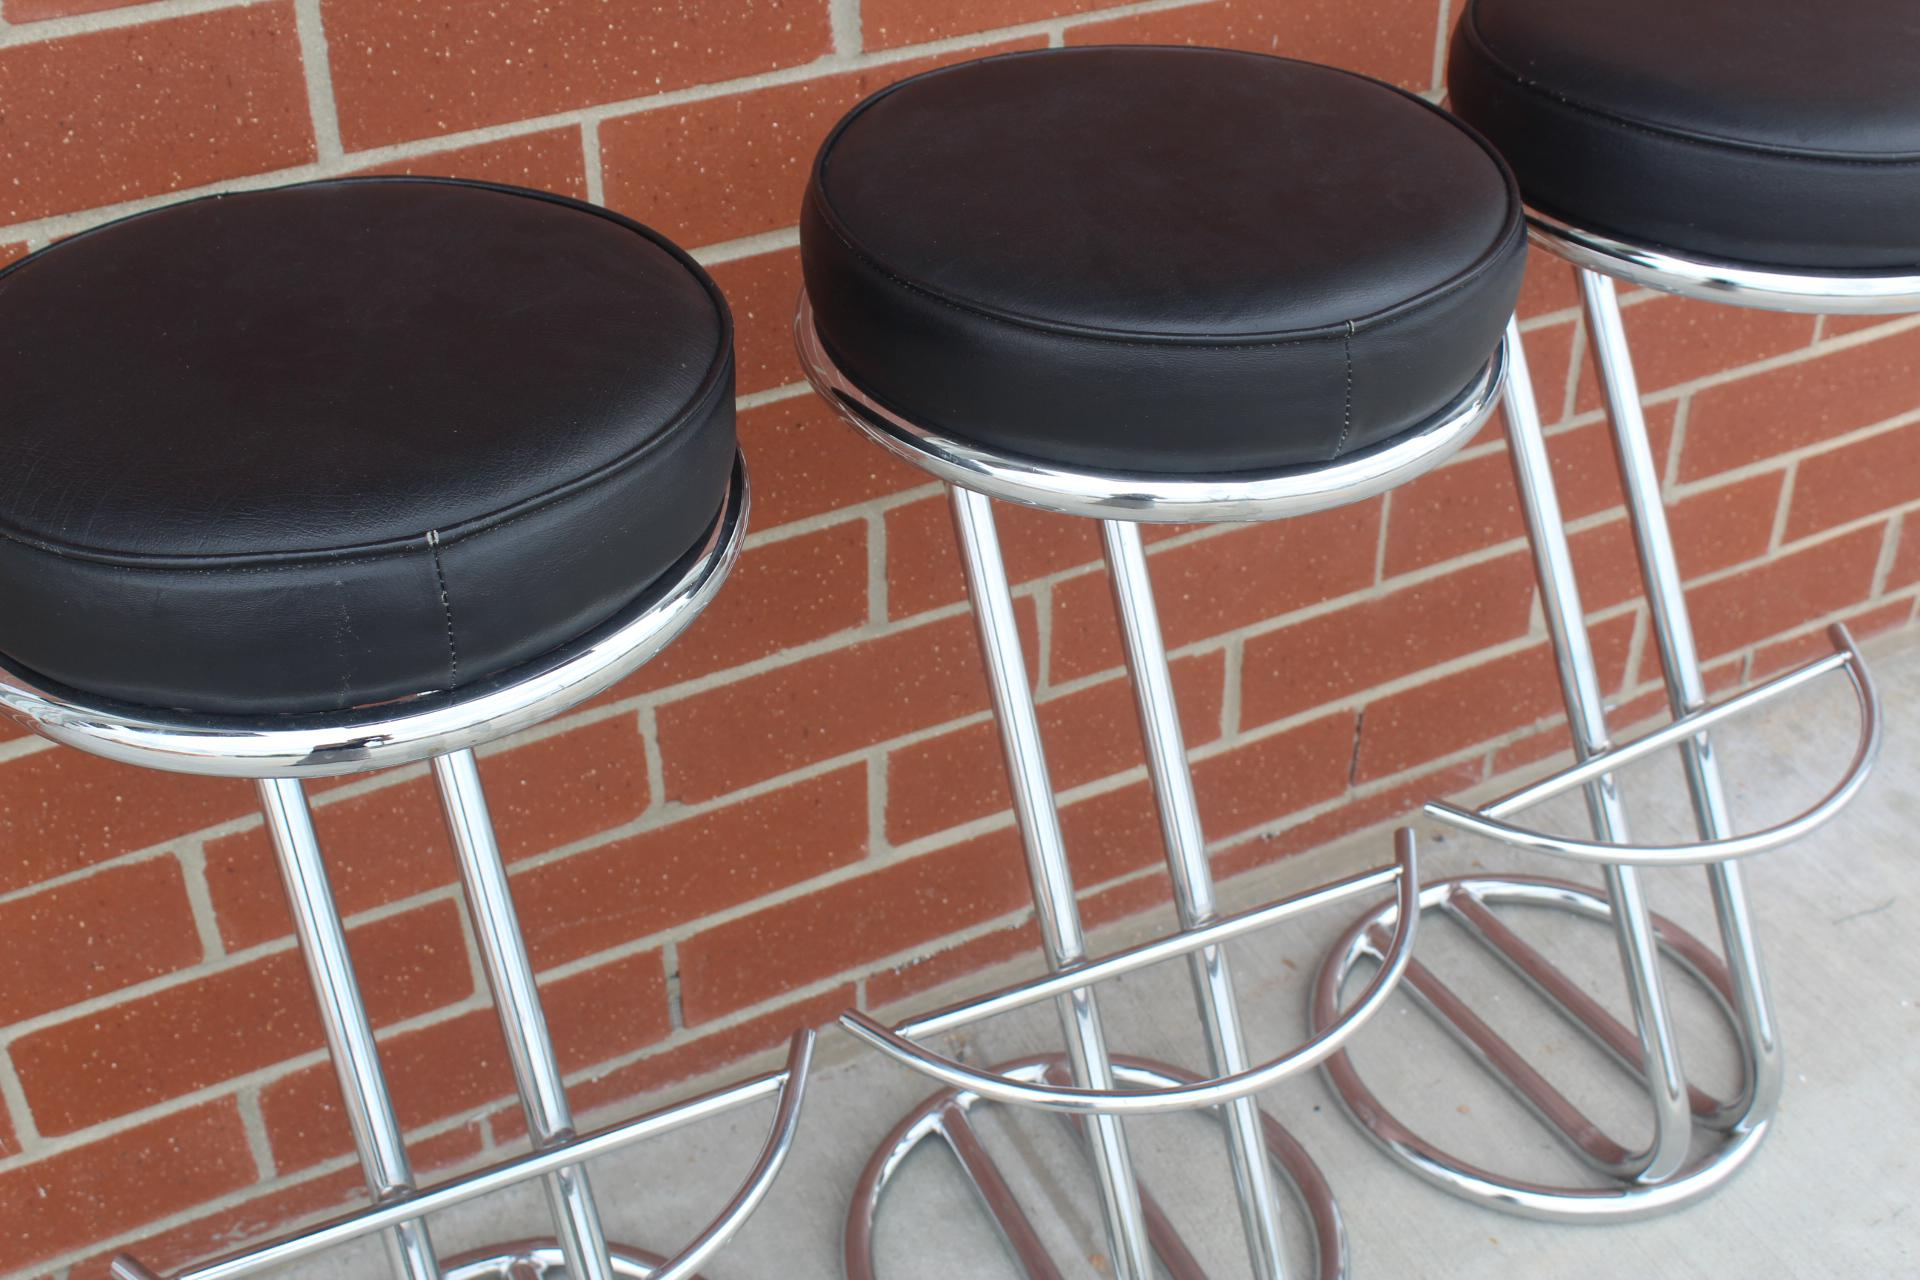 Vintage Art Deco Chrome u0026 Leather Bar Stools - Set of 3 - Image 3 of  sc 1 st  Chairish & Vintage Art Deco Chrome u0026 Leather Bar Stools - Set of 3 | Chairish islam-shia.org